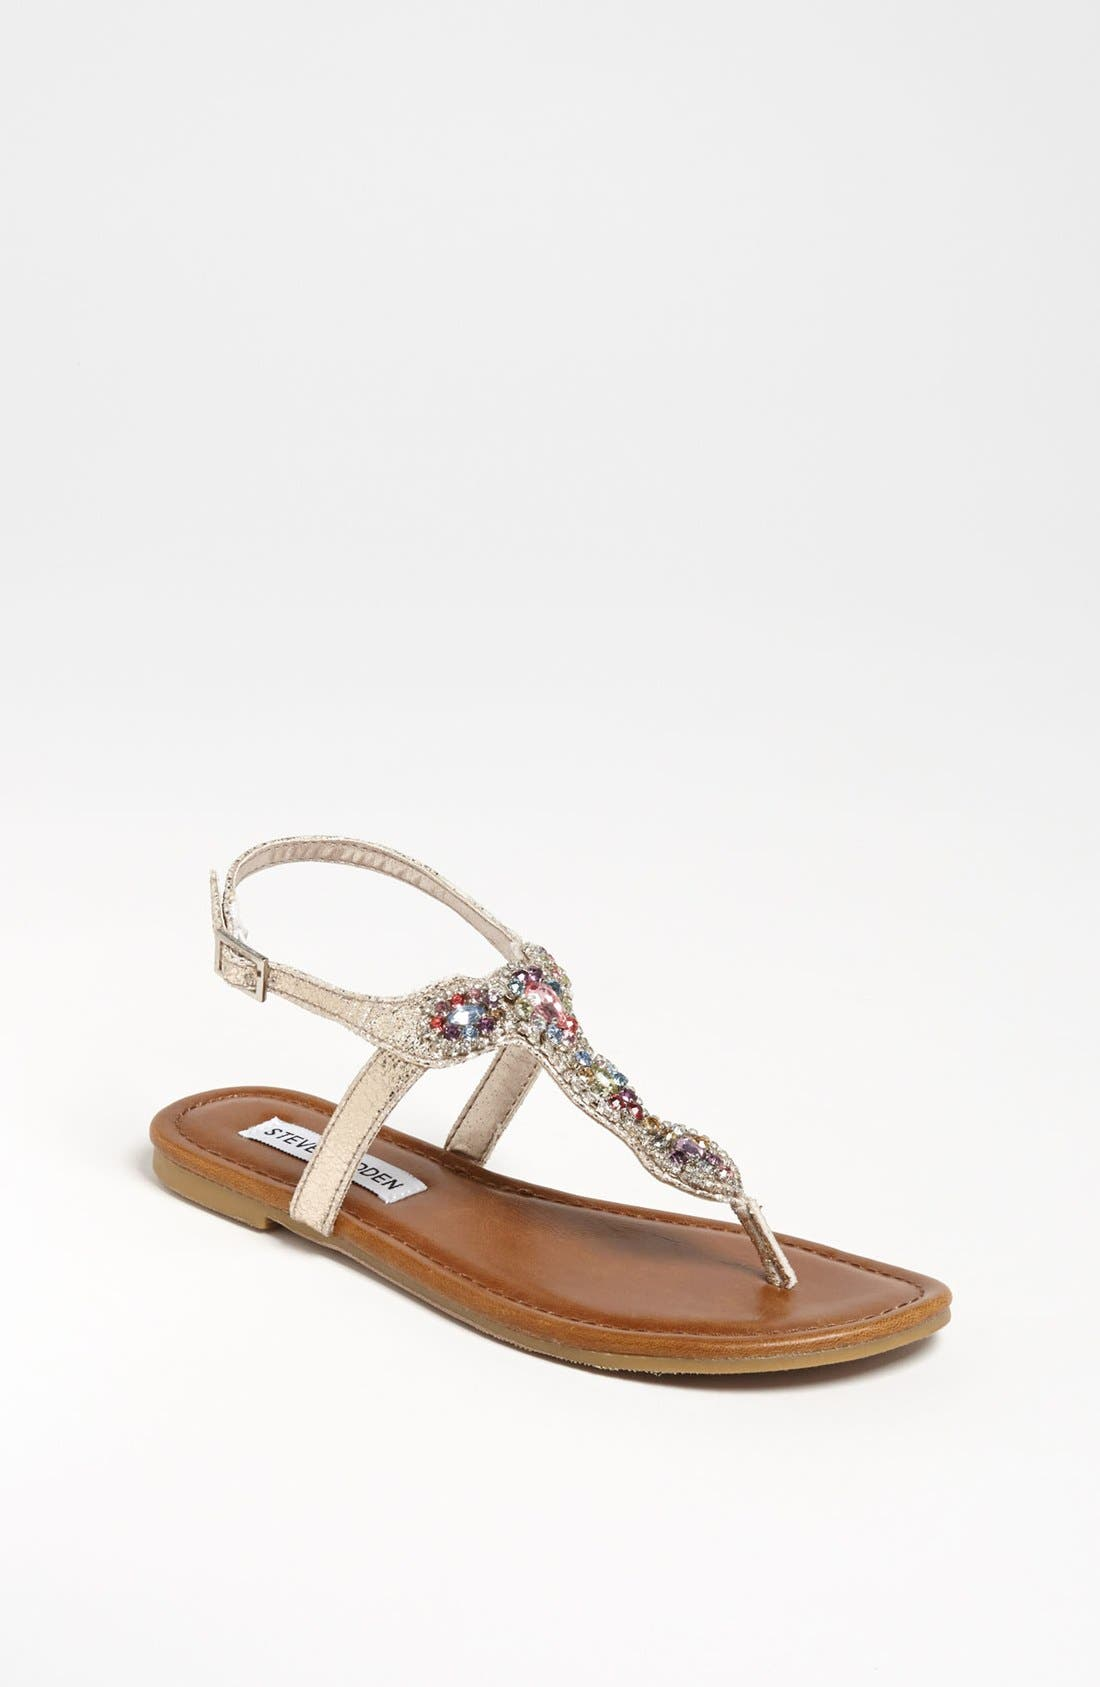 Alternate Image 1 Selected - Steve Madden 'Glare' Sandal (Toddler, Little Kid & Big Kid)